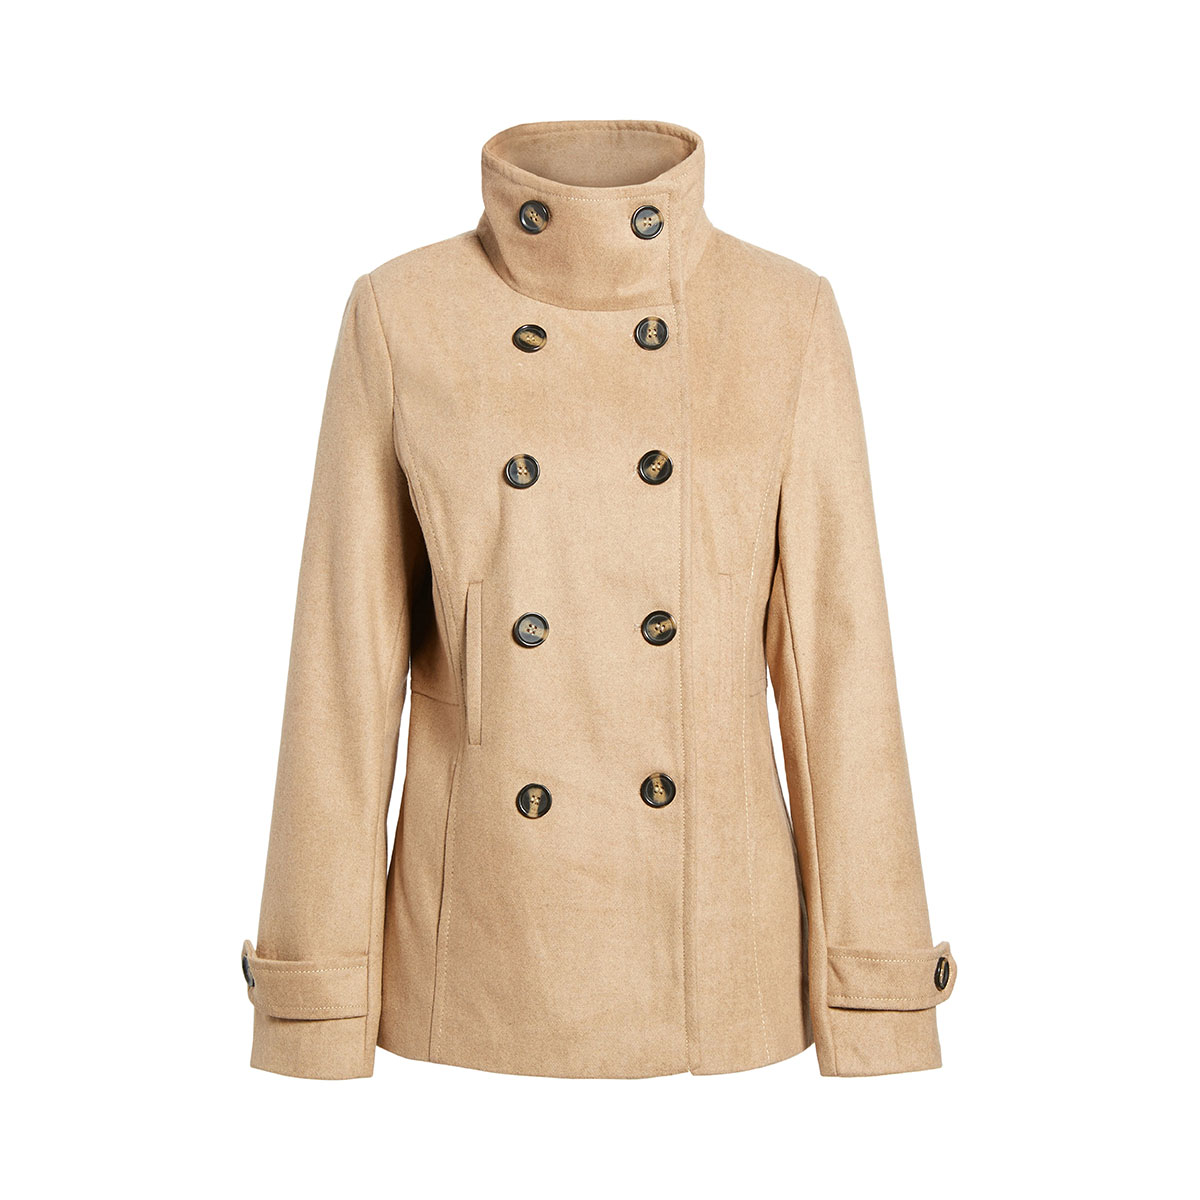 nordstrom-black-friday-sale-thread-supply-peacoat